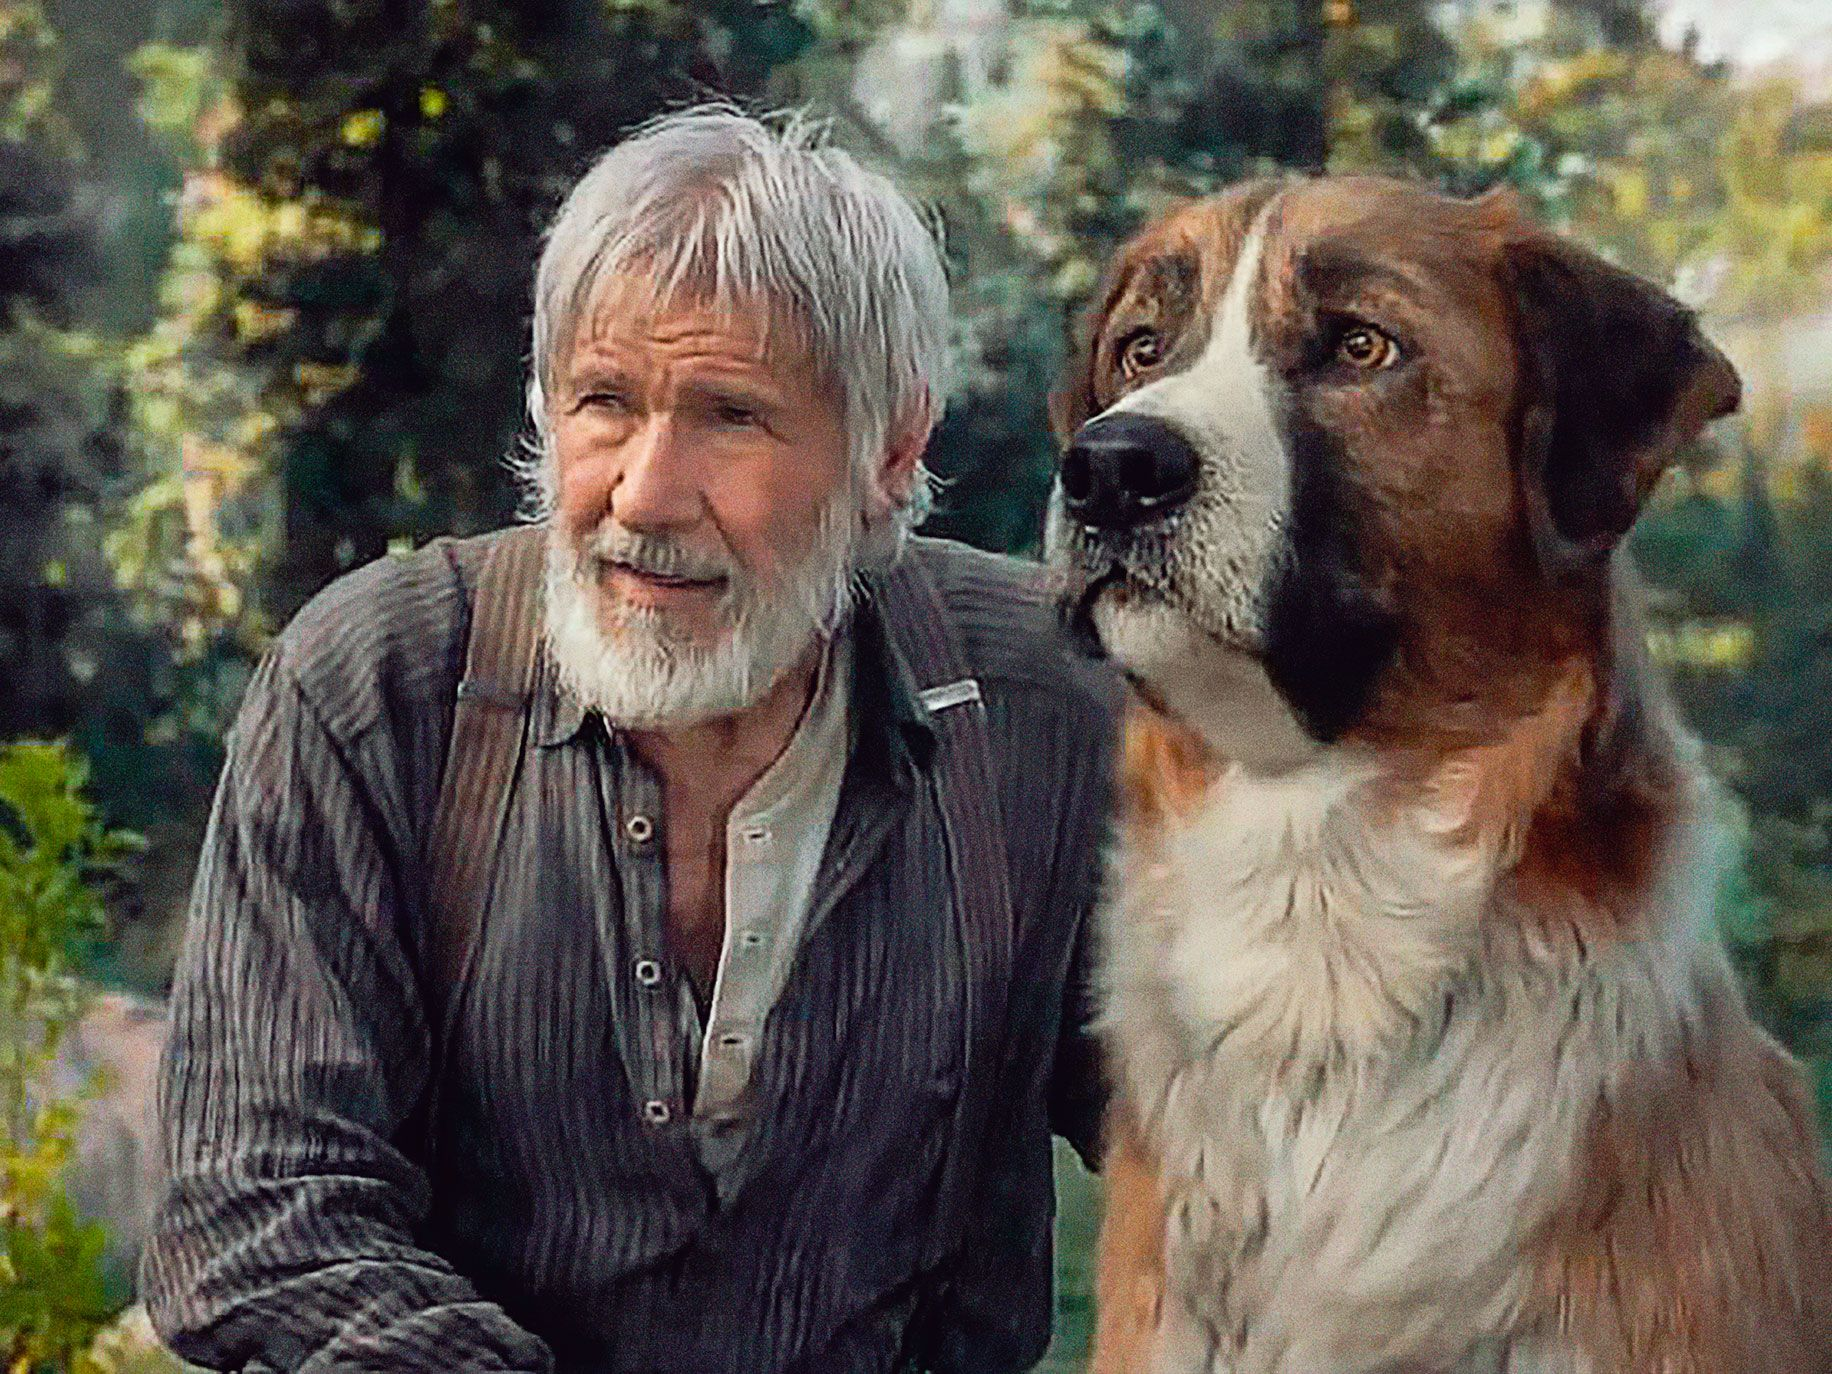 Harrison Ford and a CGI-created Buck in the forthcoming The Call of the Wild.